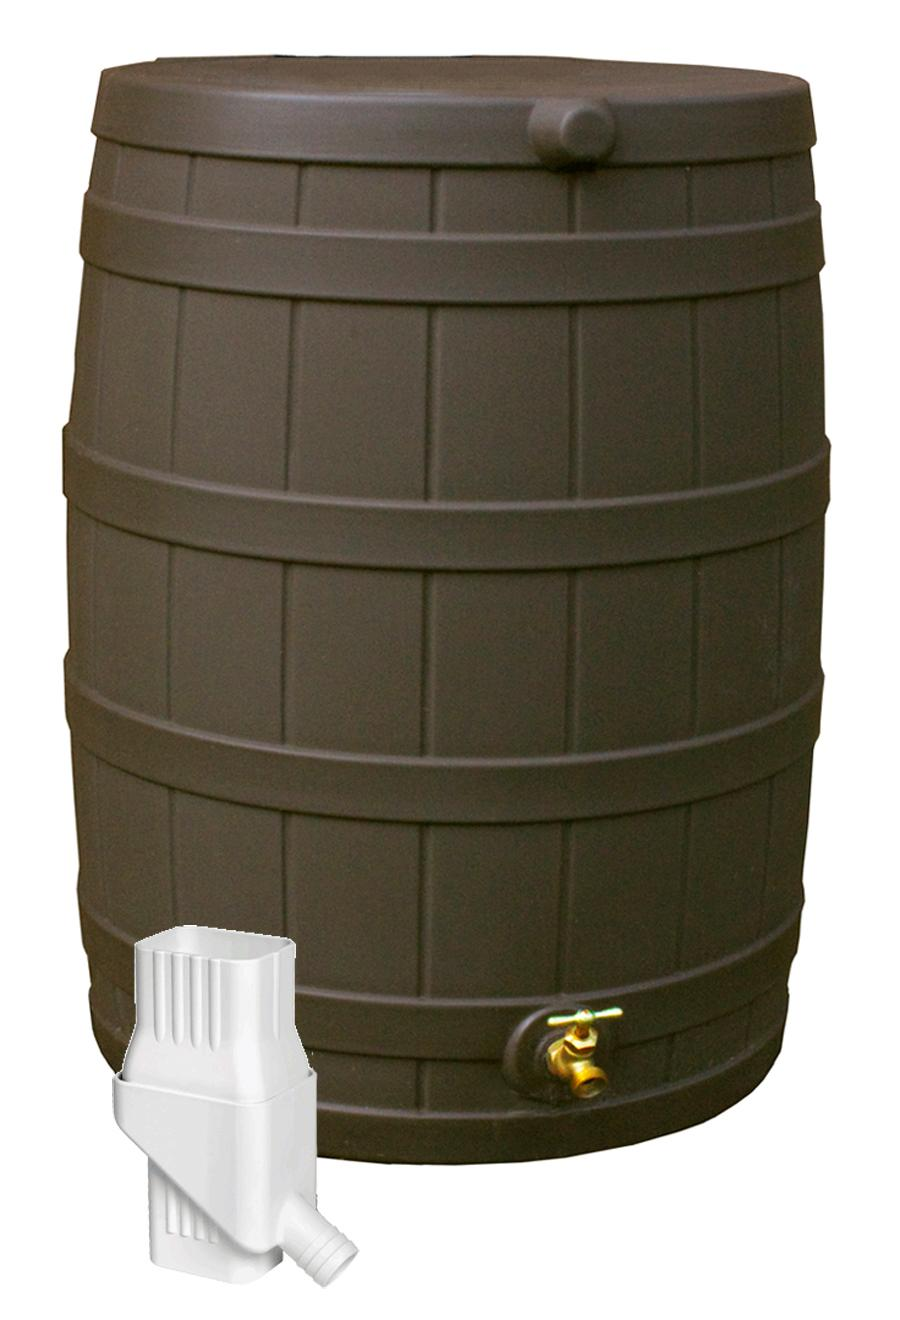 how to use a rain barrel to water lawn